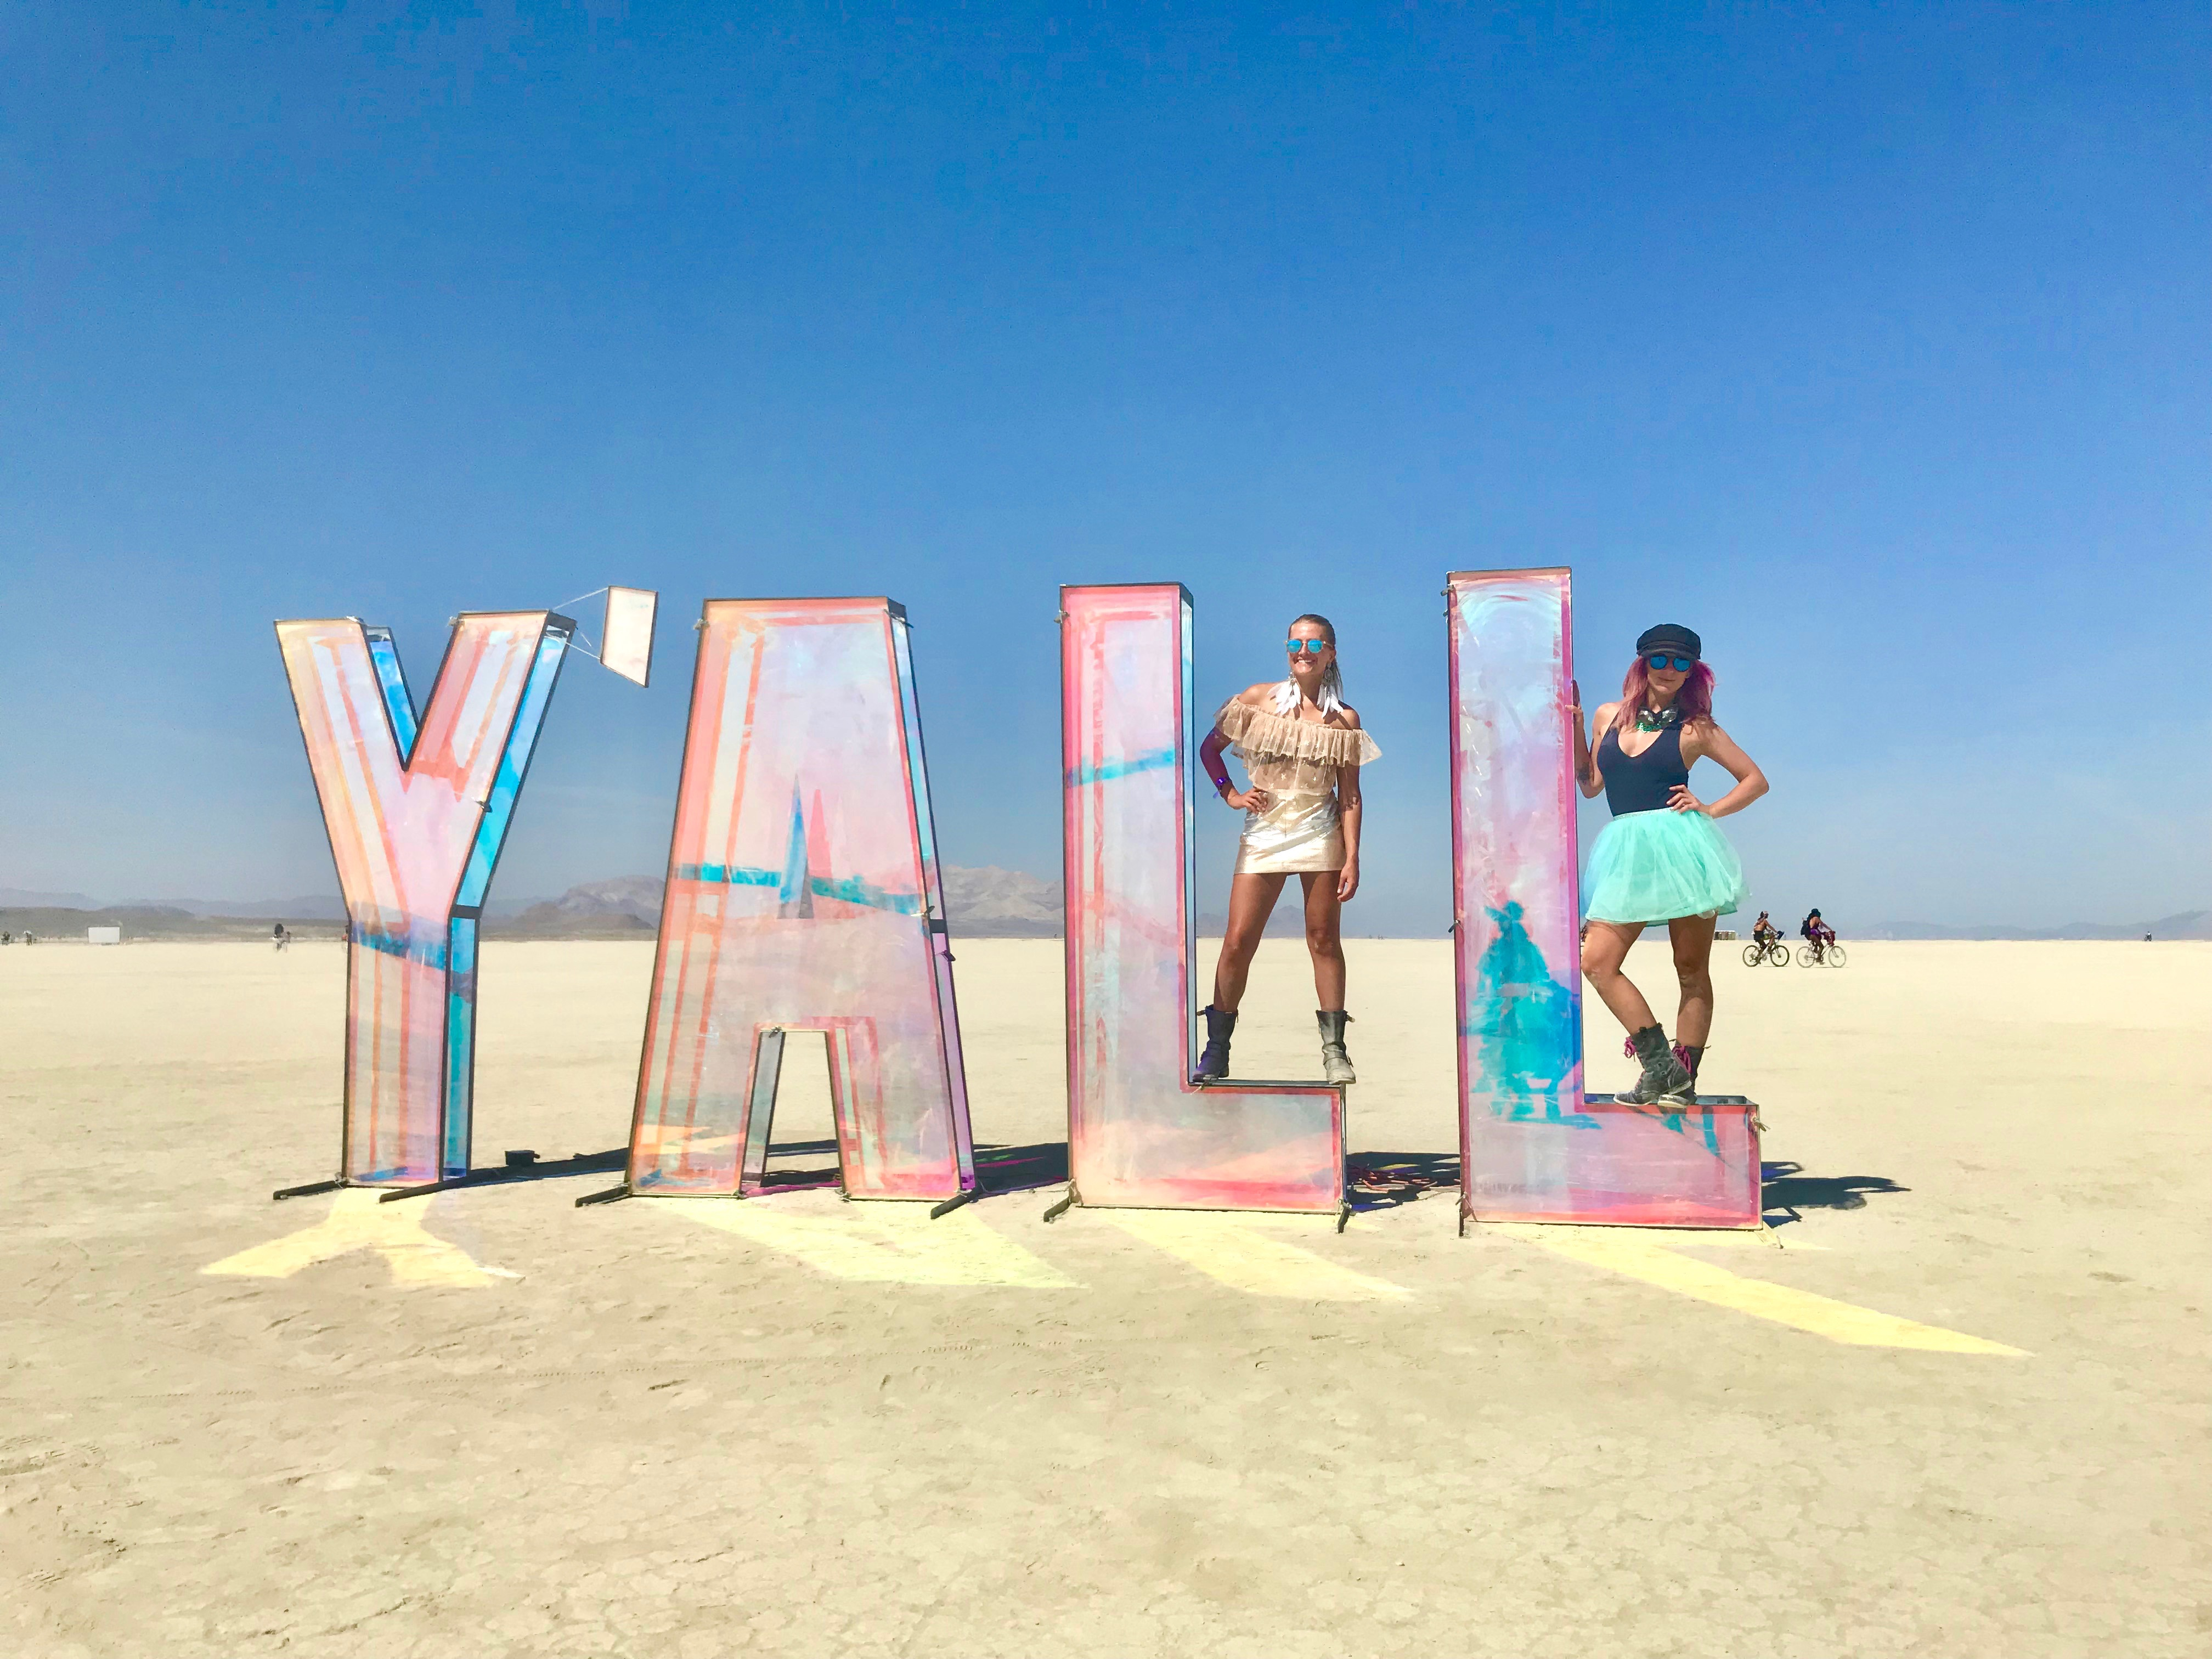 Burning man sexual activities photos